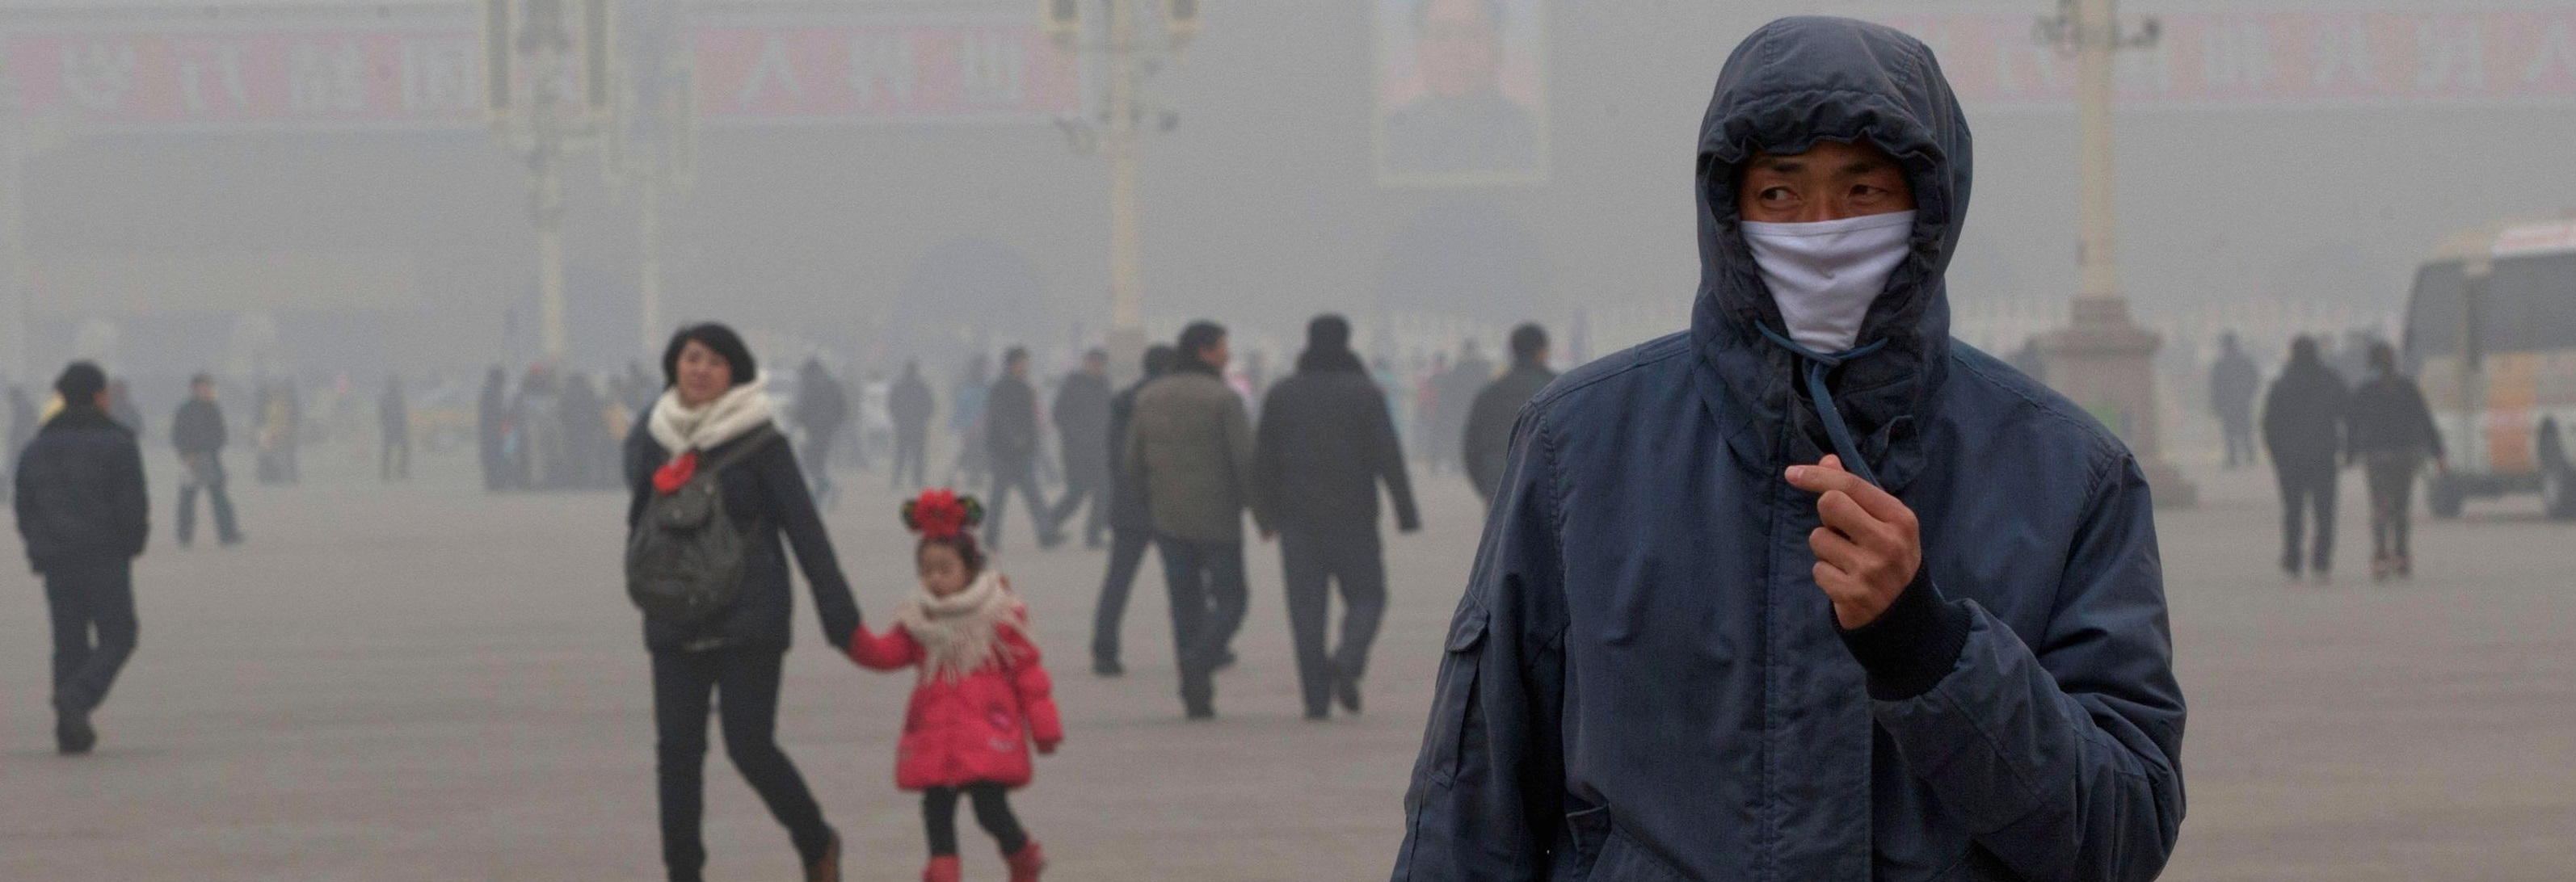 CHINA SMOG RENEWABLES